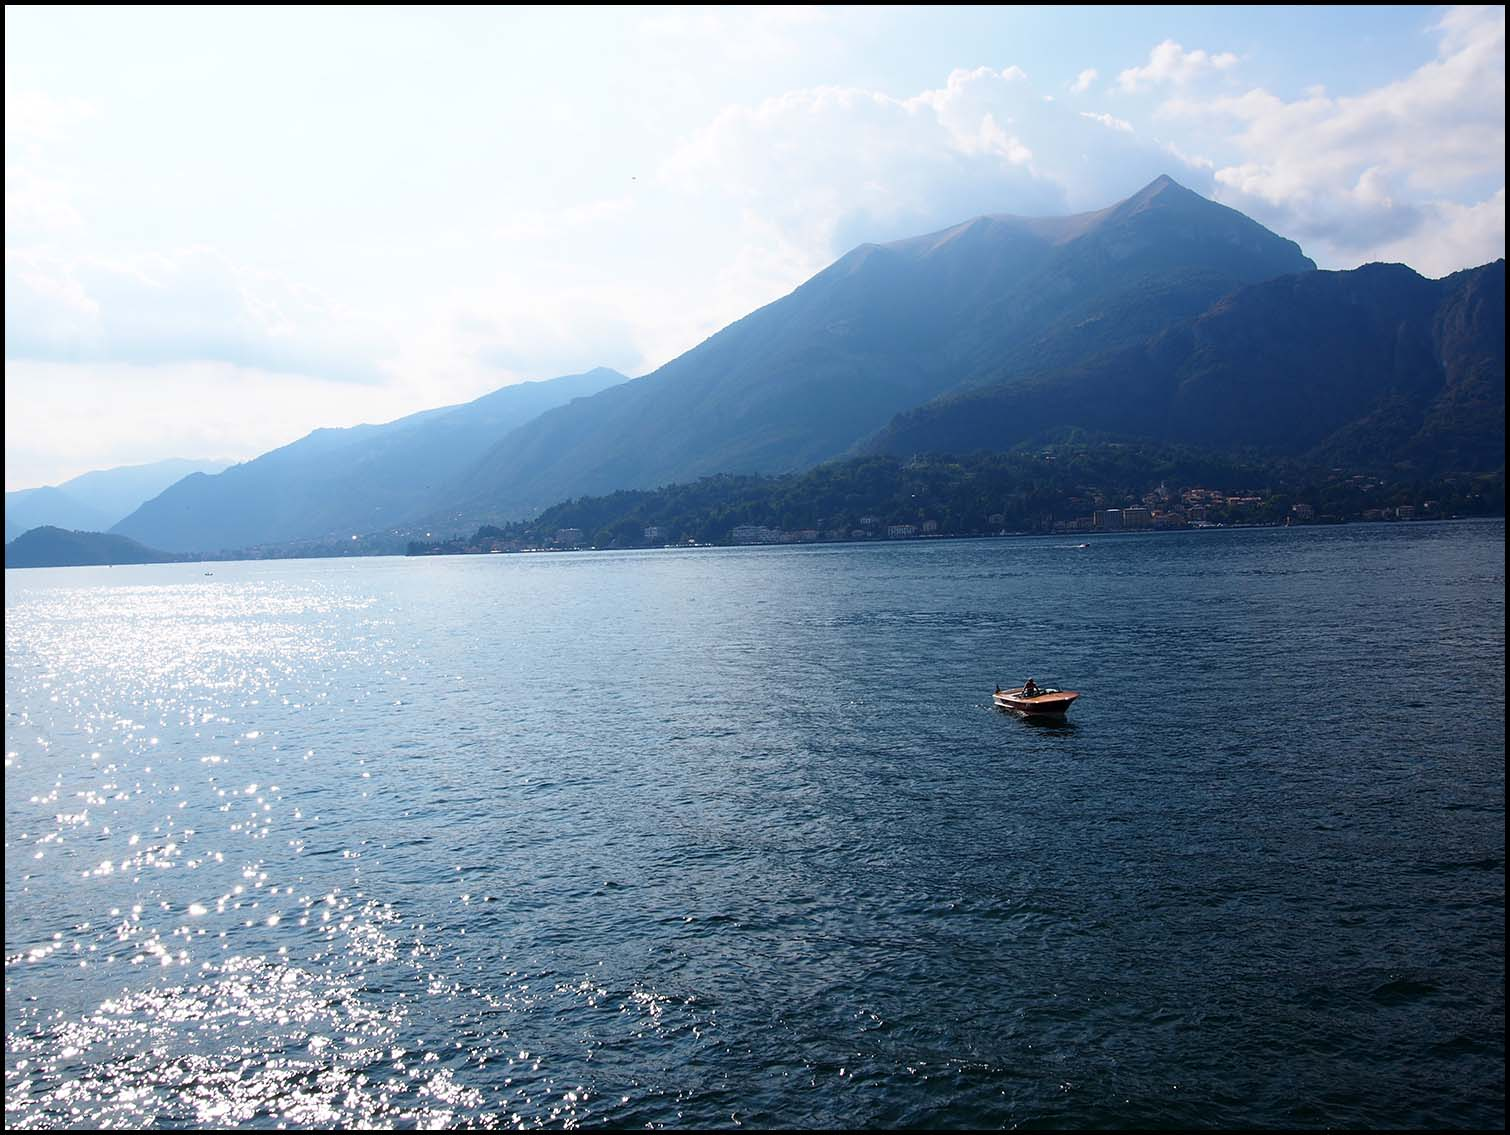 Misty Mountains at Lake Como